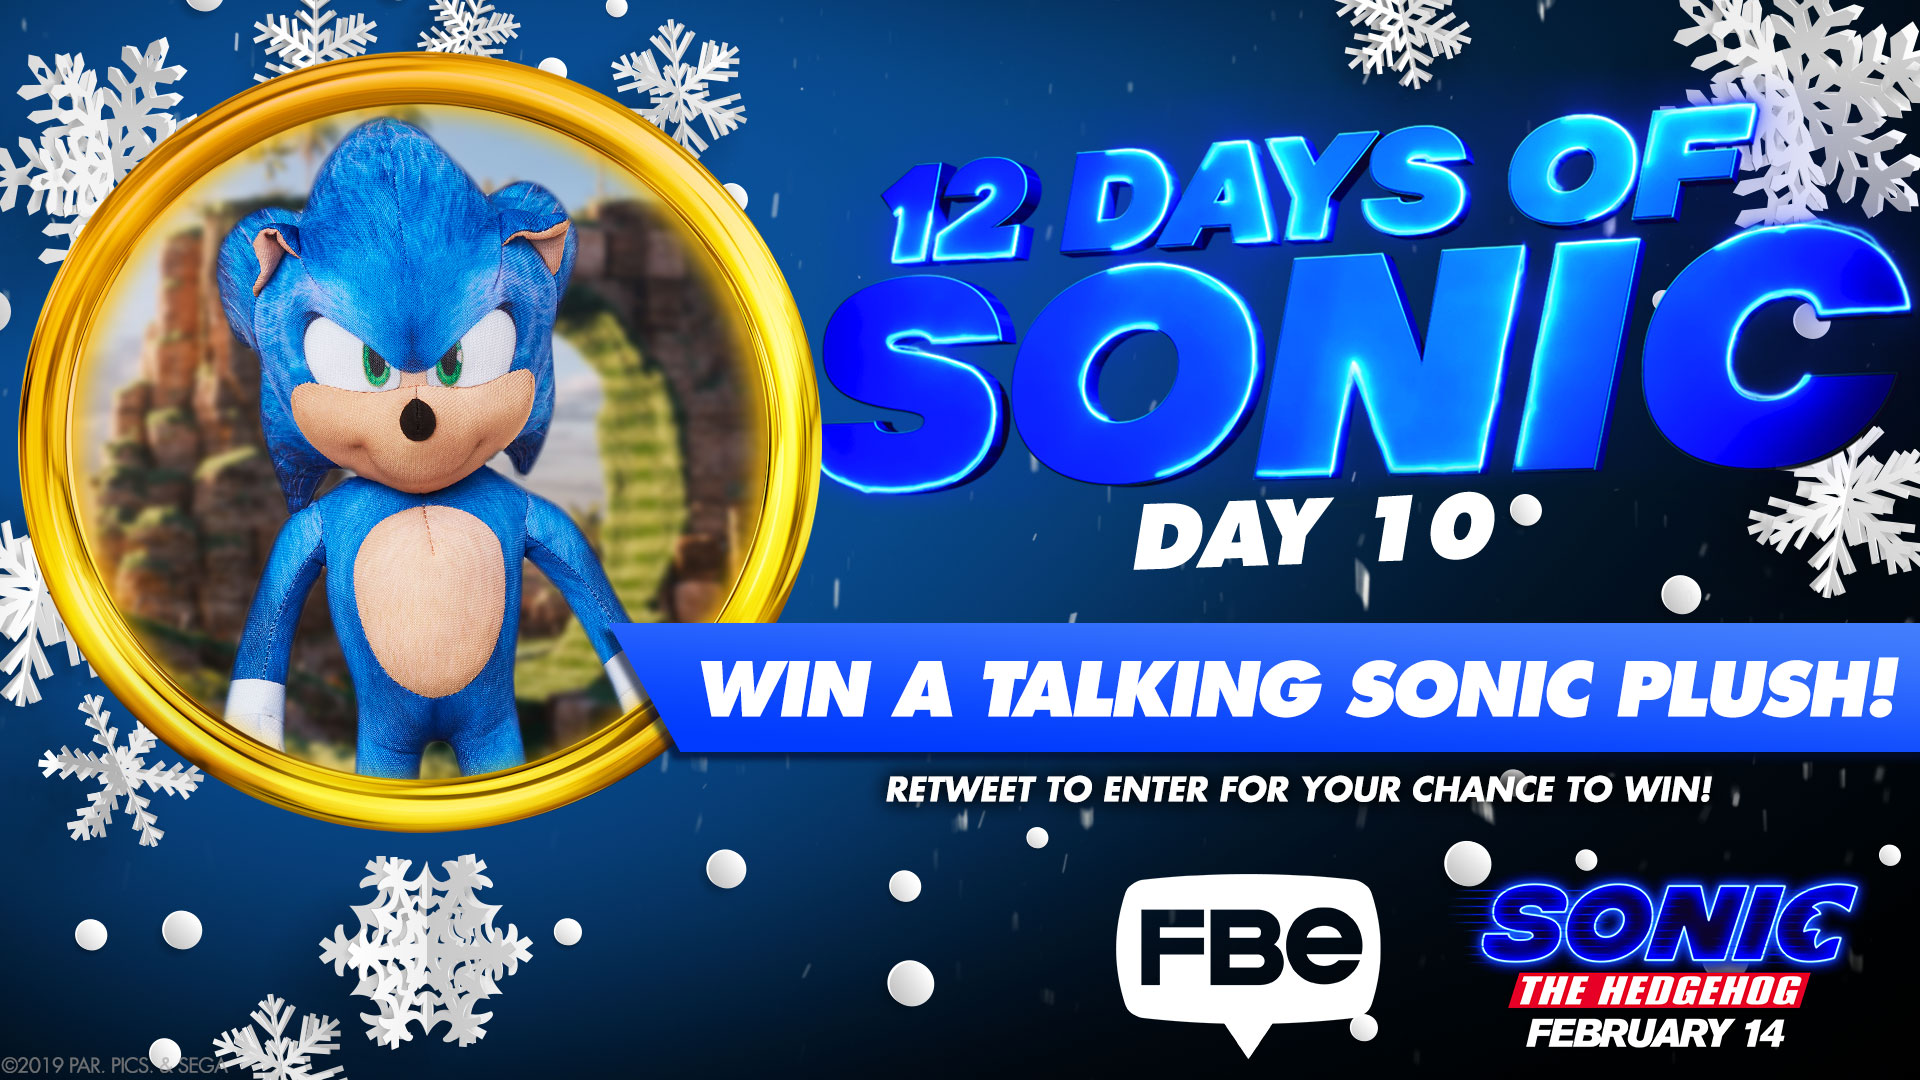 Fbe Giving Away Talking Sonic Plush Toy The Sonic Stadium